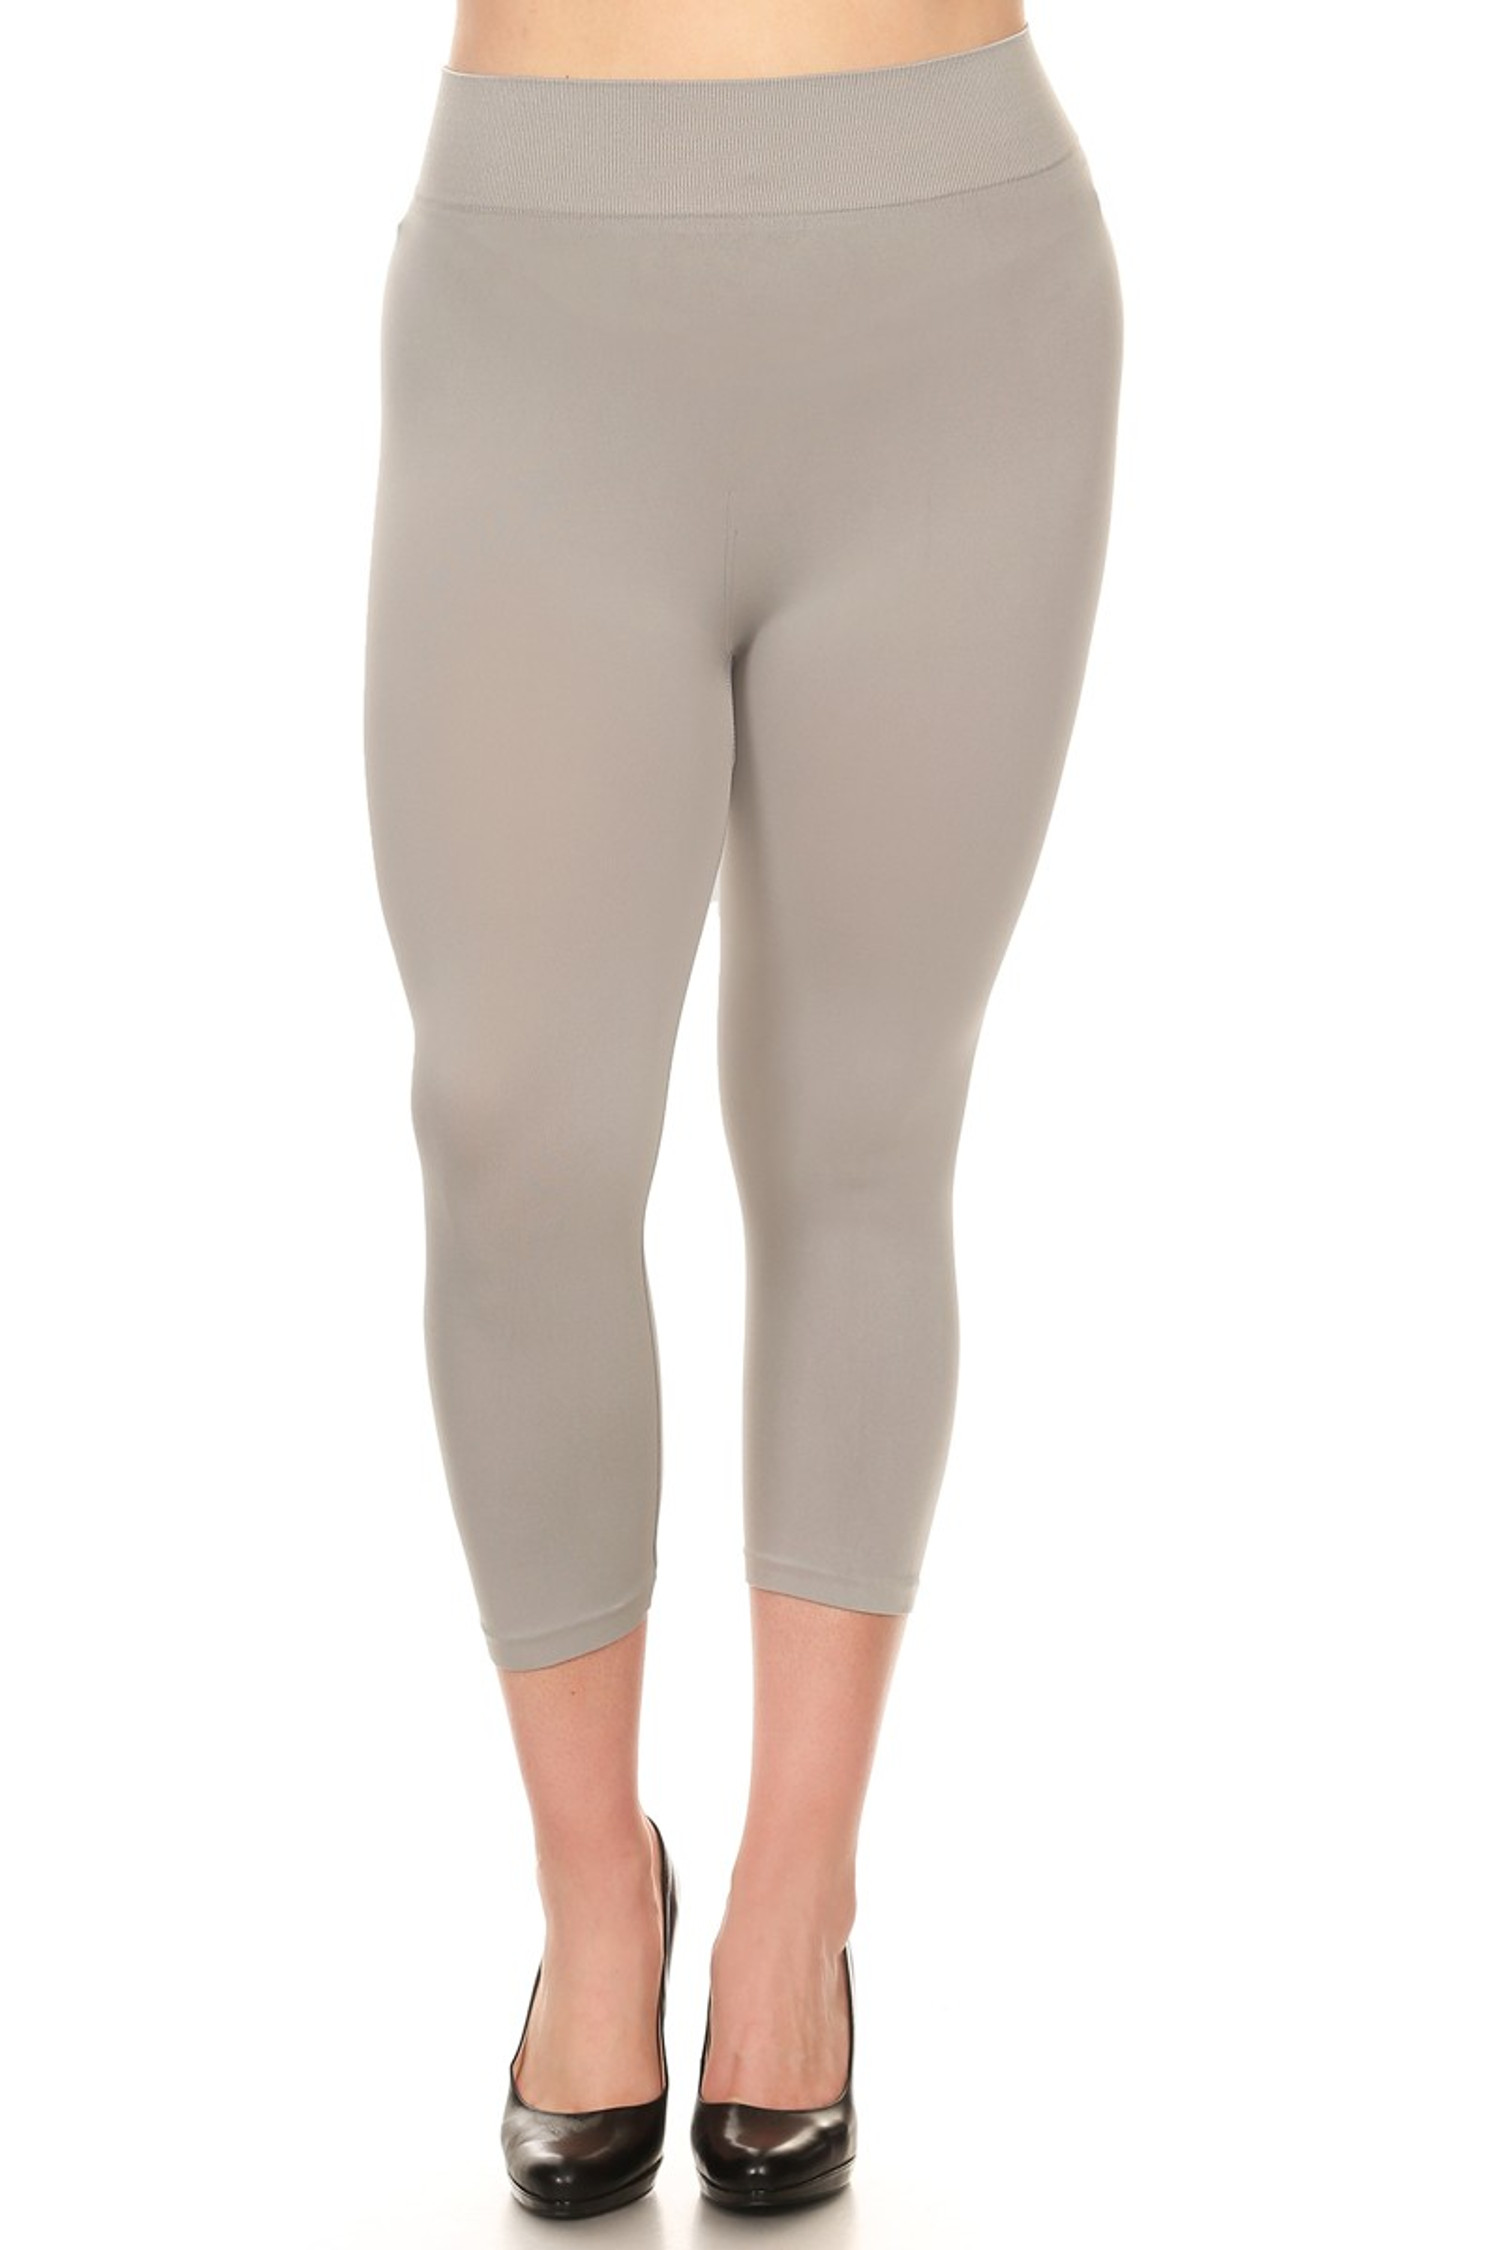 Gray Basic Spandex Capri Plus Size Leggings